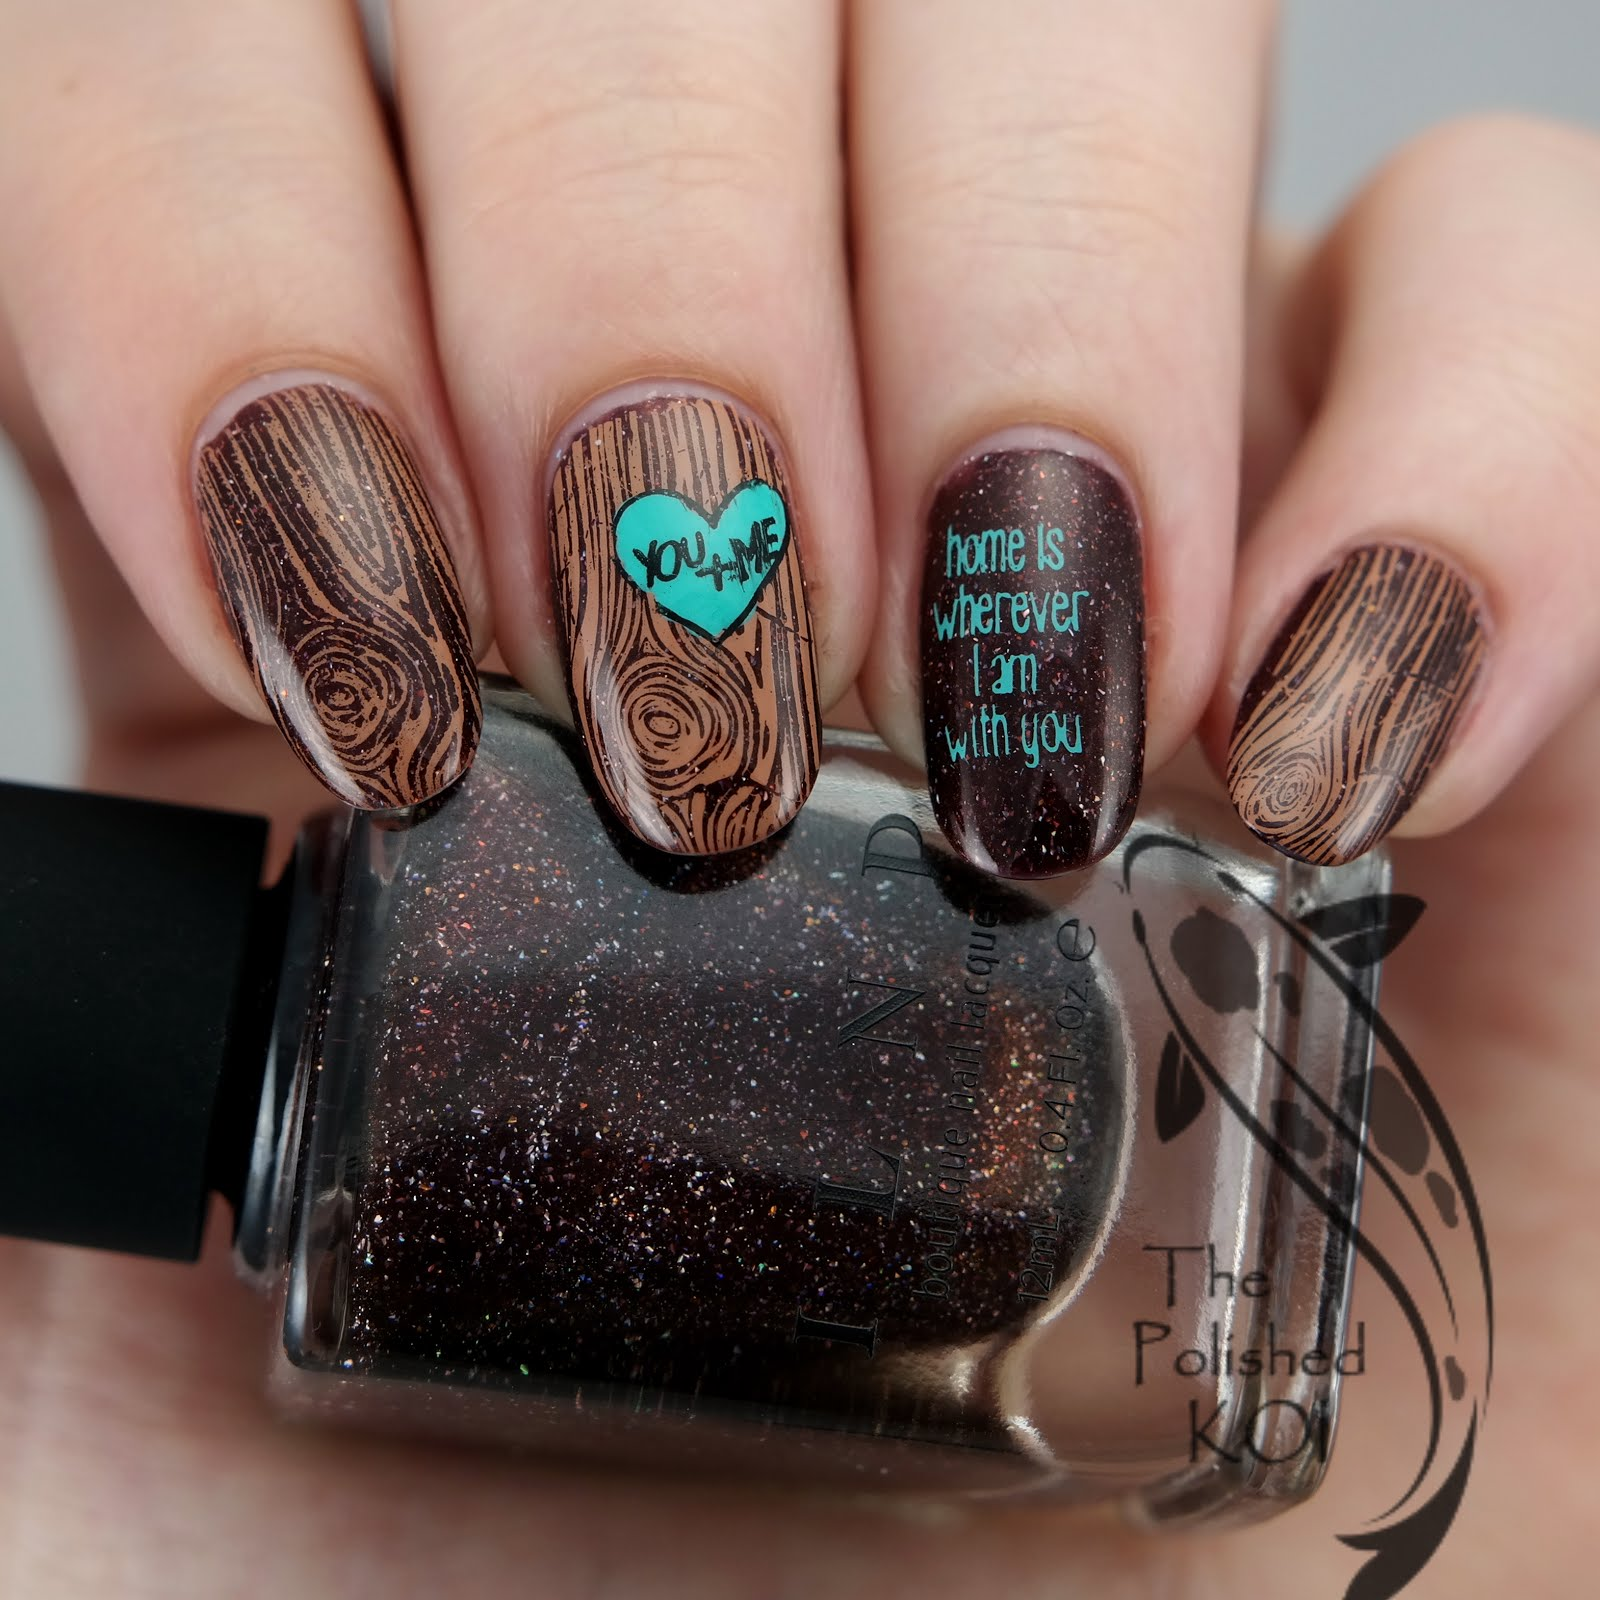 The polished koi swatch art ilnp overnight bag wood grain designs always draw me in but until uberchic they were pretty simplistic and definitely not as detailed or realistic looking prinsesfo Image collections